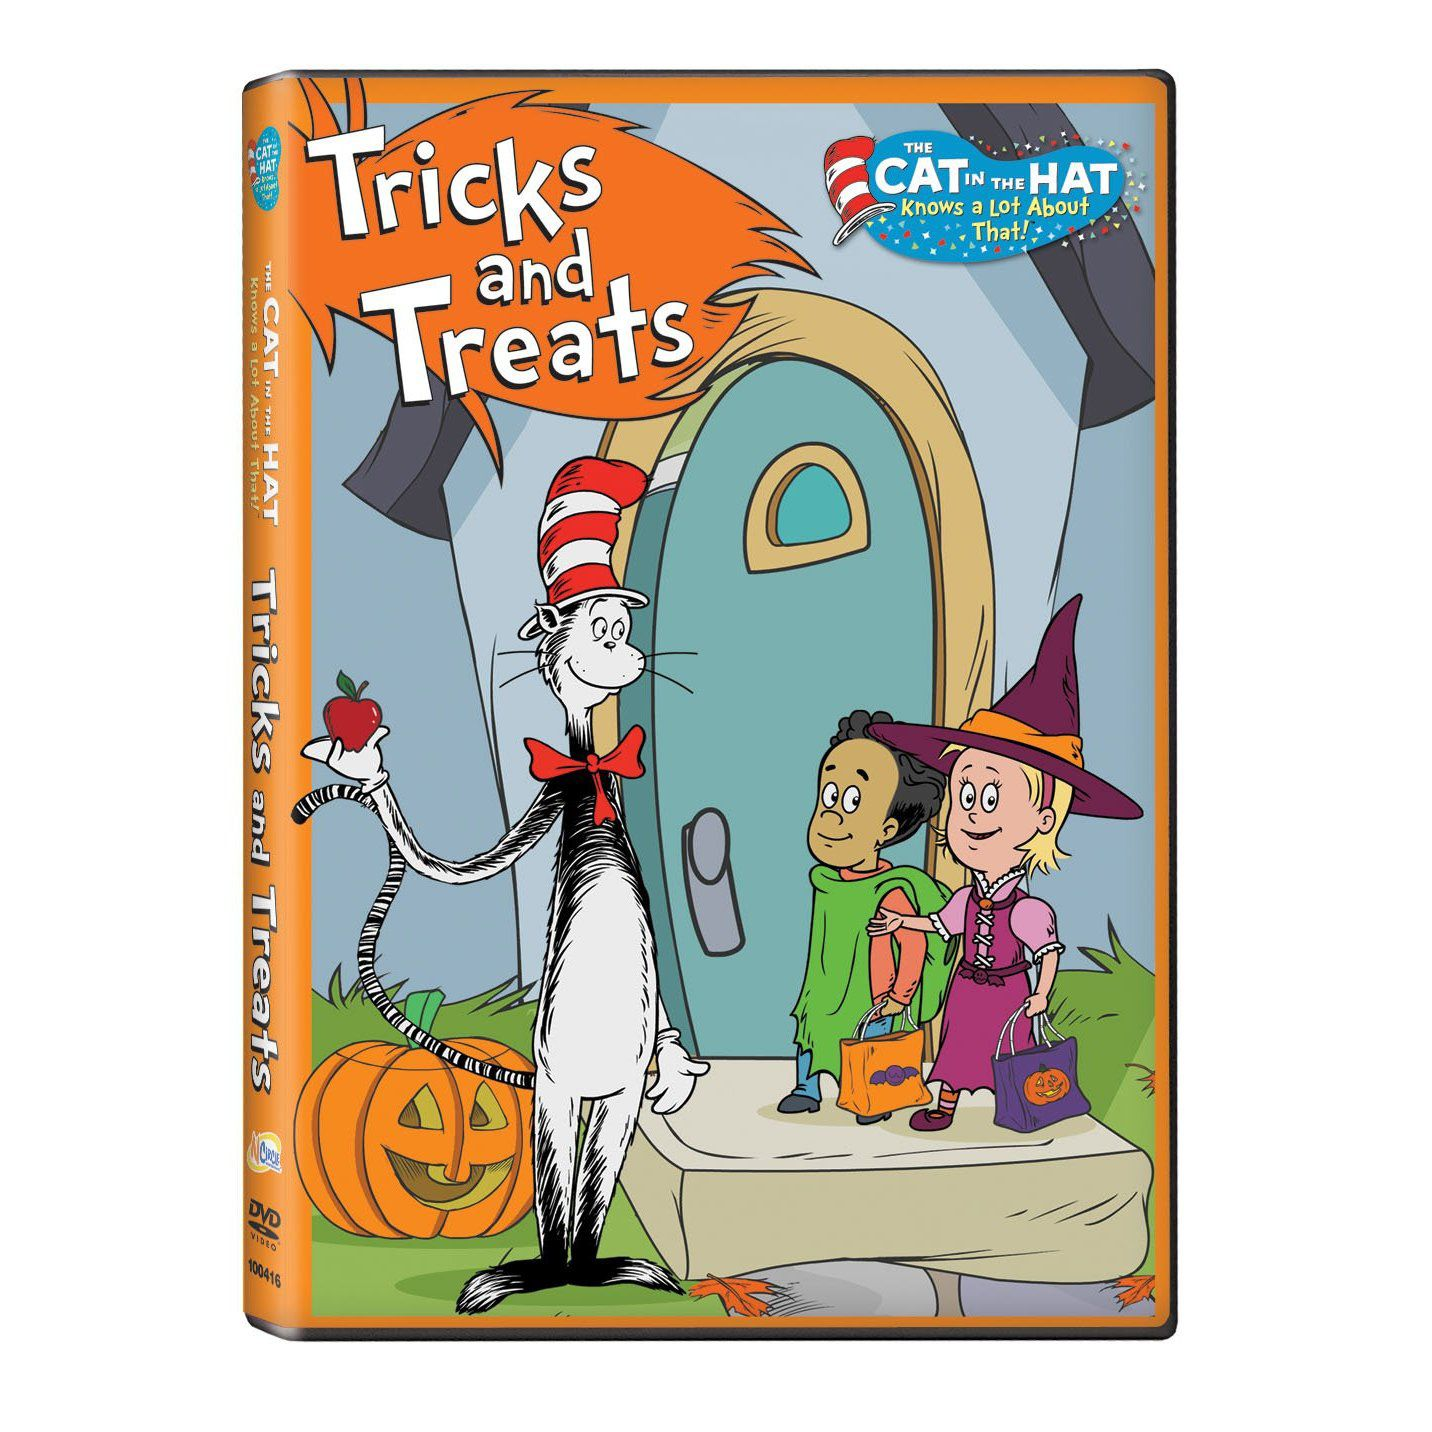 Pbs Kids Halloween Dvd.The Official Pbs Kids Shop The Cat In The Hat Knows A Lot About